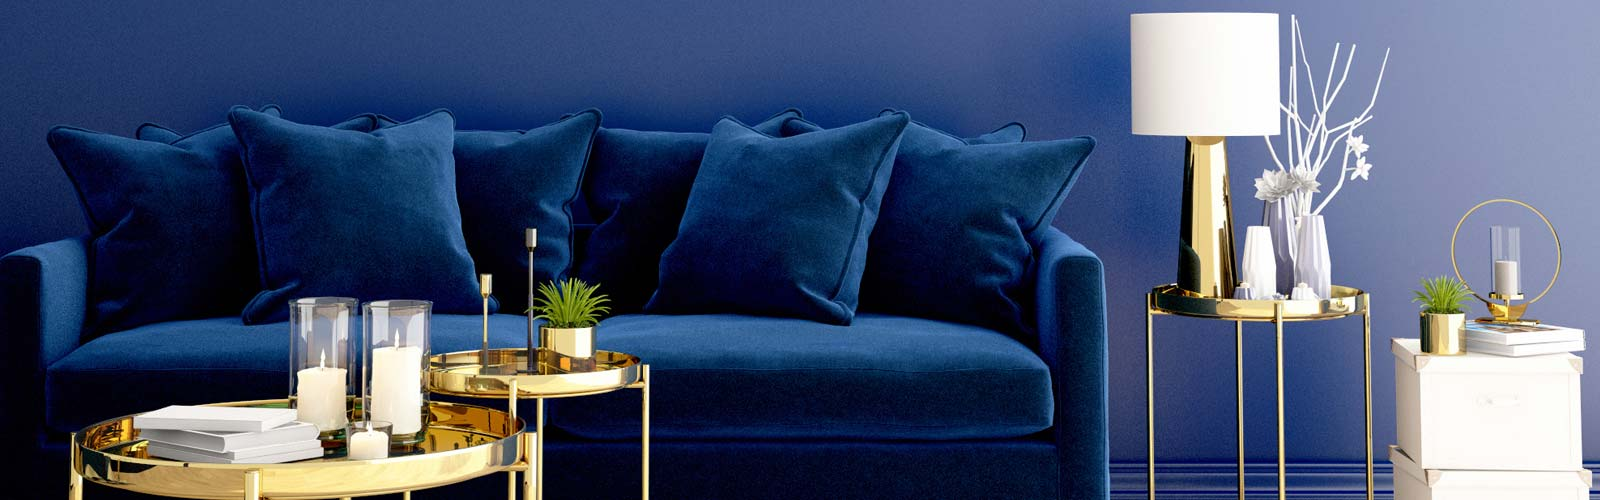 Blue velvet sofa behind gold coffee tables against blue wall in Pantone Color of the Year Classic Blue